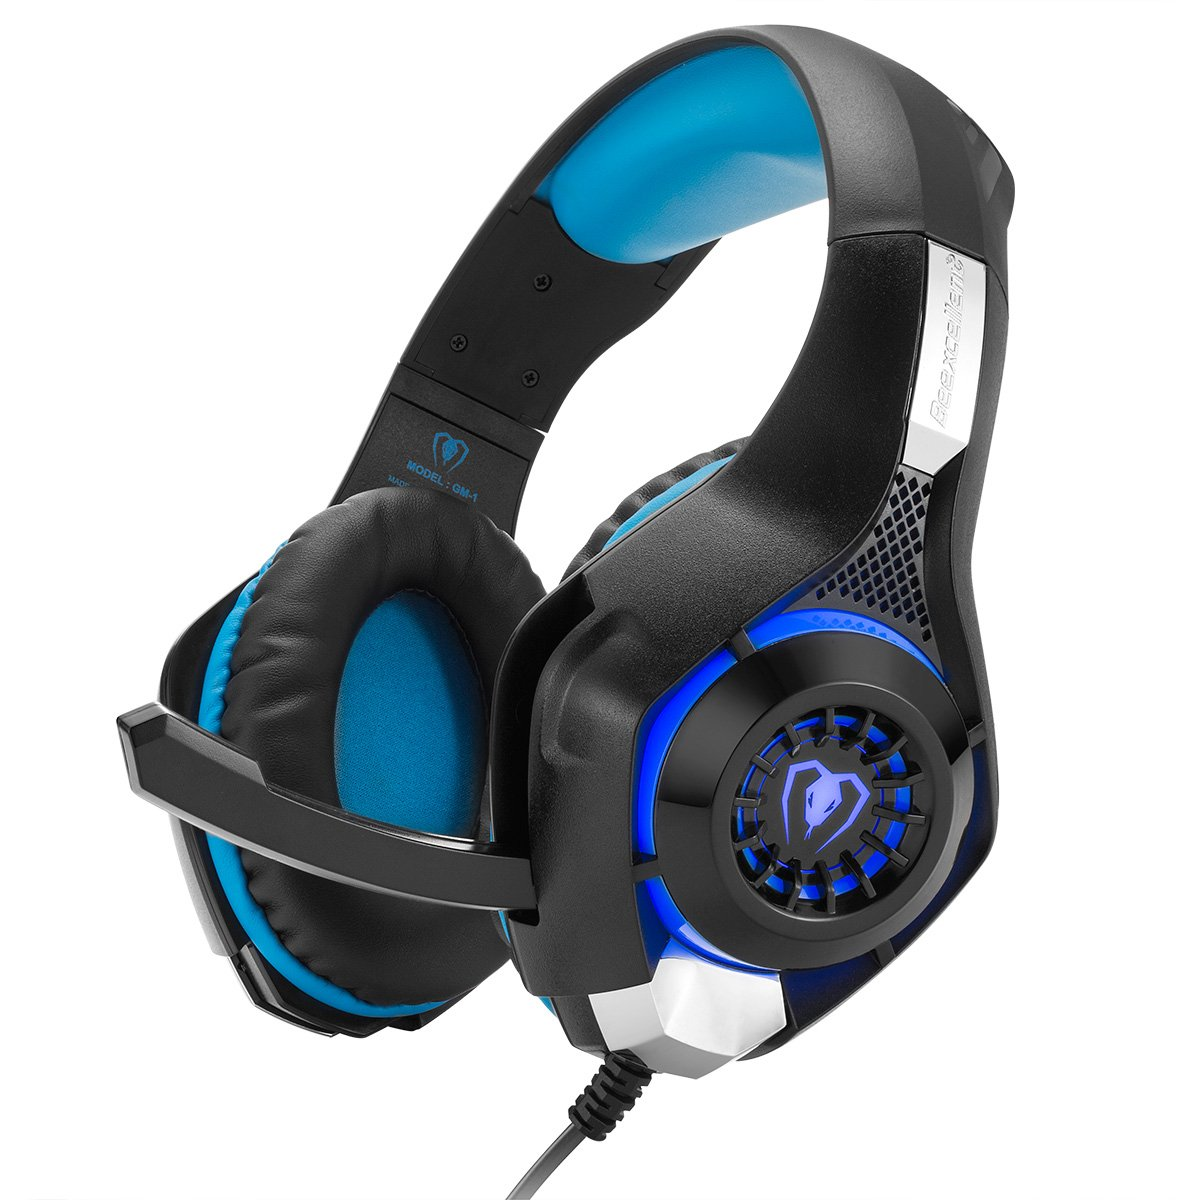 Amazon Com Cocar Gaming Headset Bass Enhanced Headphone For Playstation Ps4 Psp Xbox One Tablet Ios Ipad Smartphone Free Adapter Cable For Pc With Mic Noise Cancelling Black Gm 1 Blue Video Games